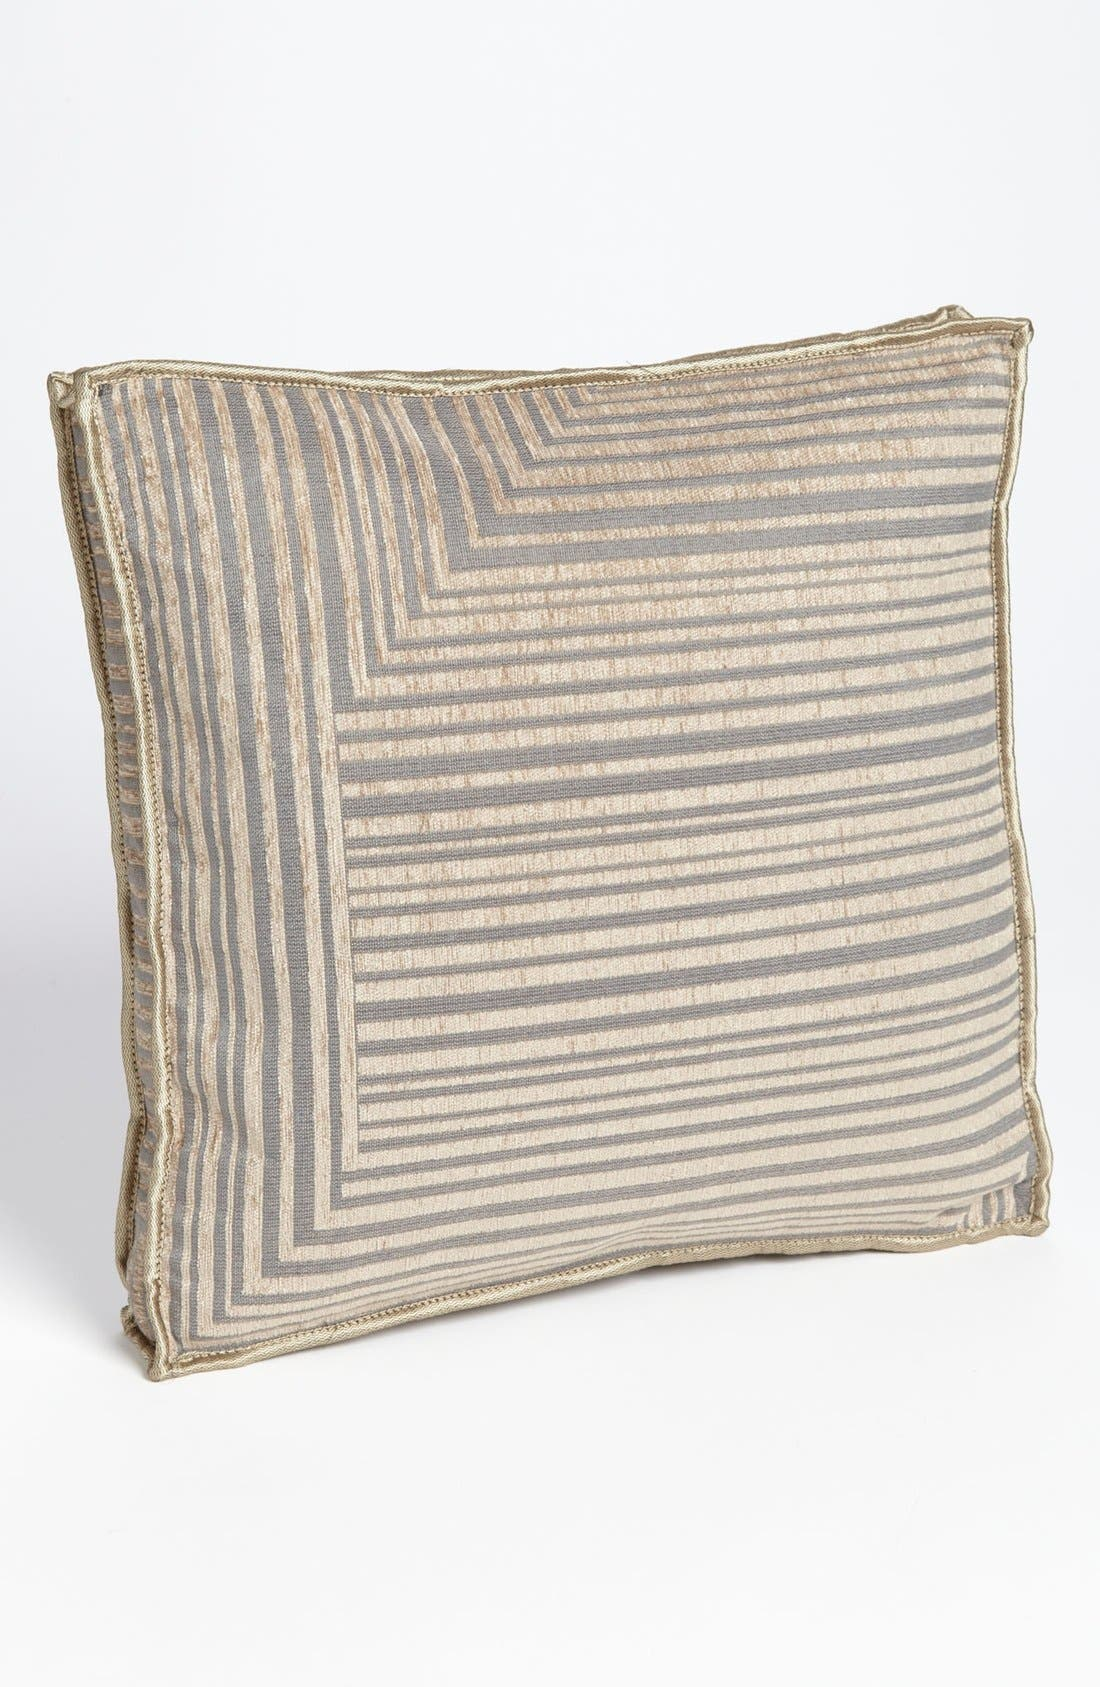 Alternate Image 1 Selected - Vince Camuto 'Munich' Pillow